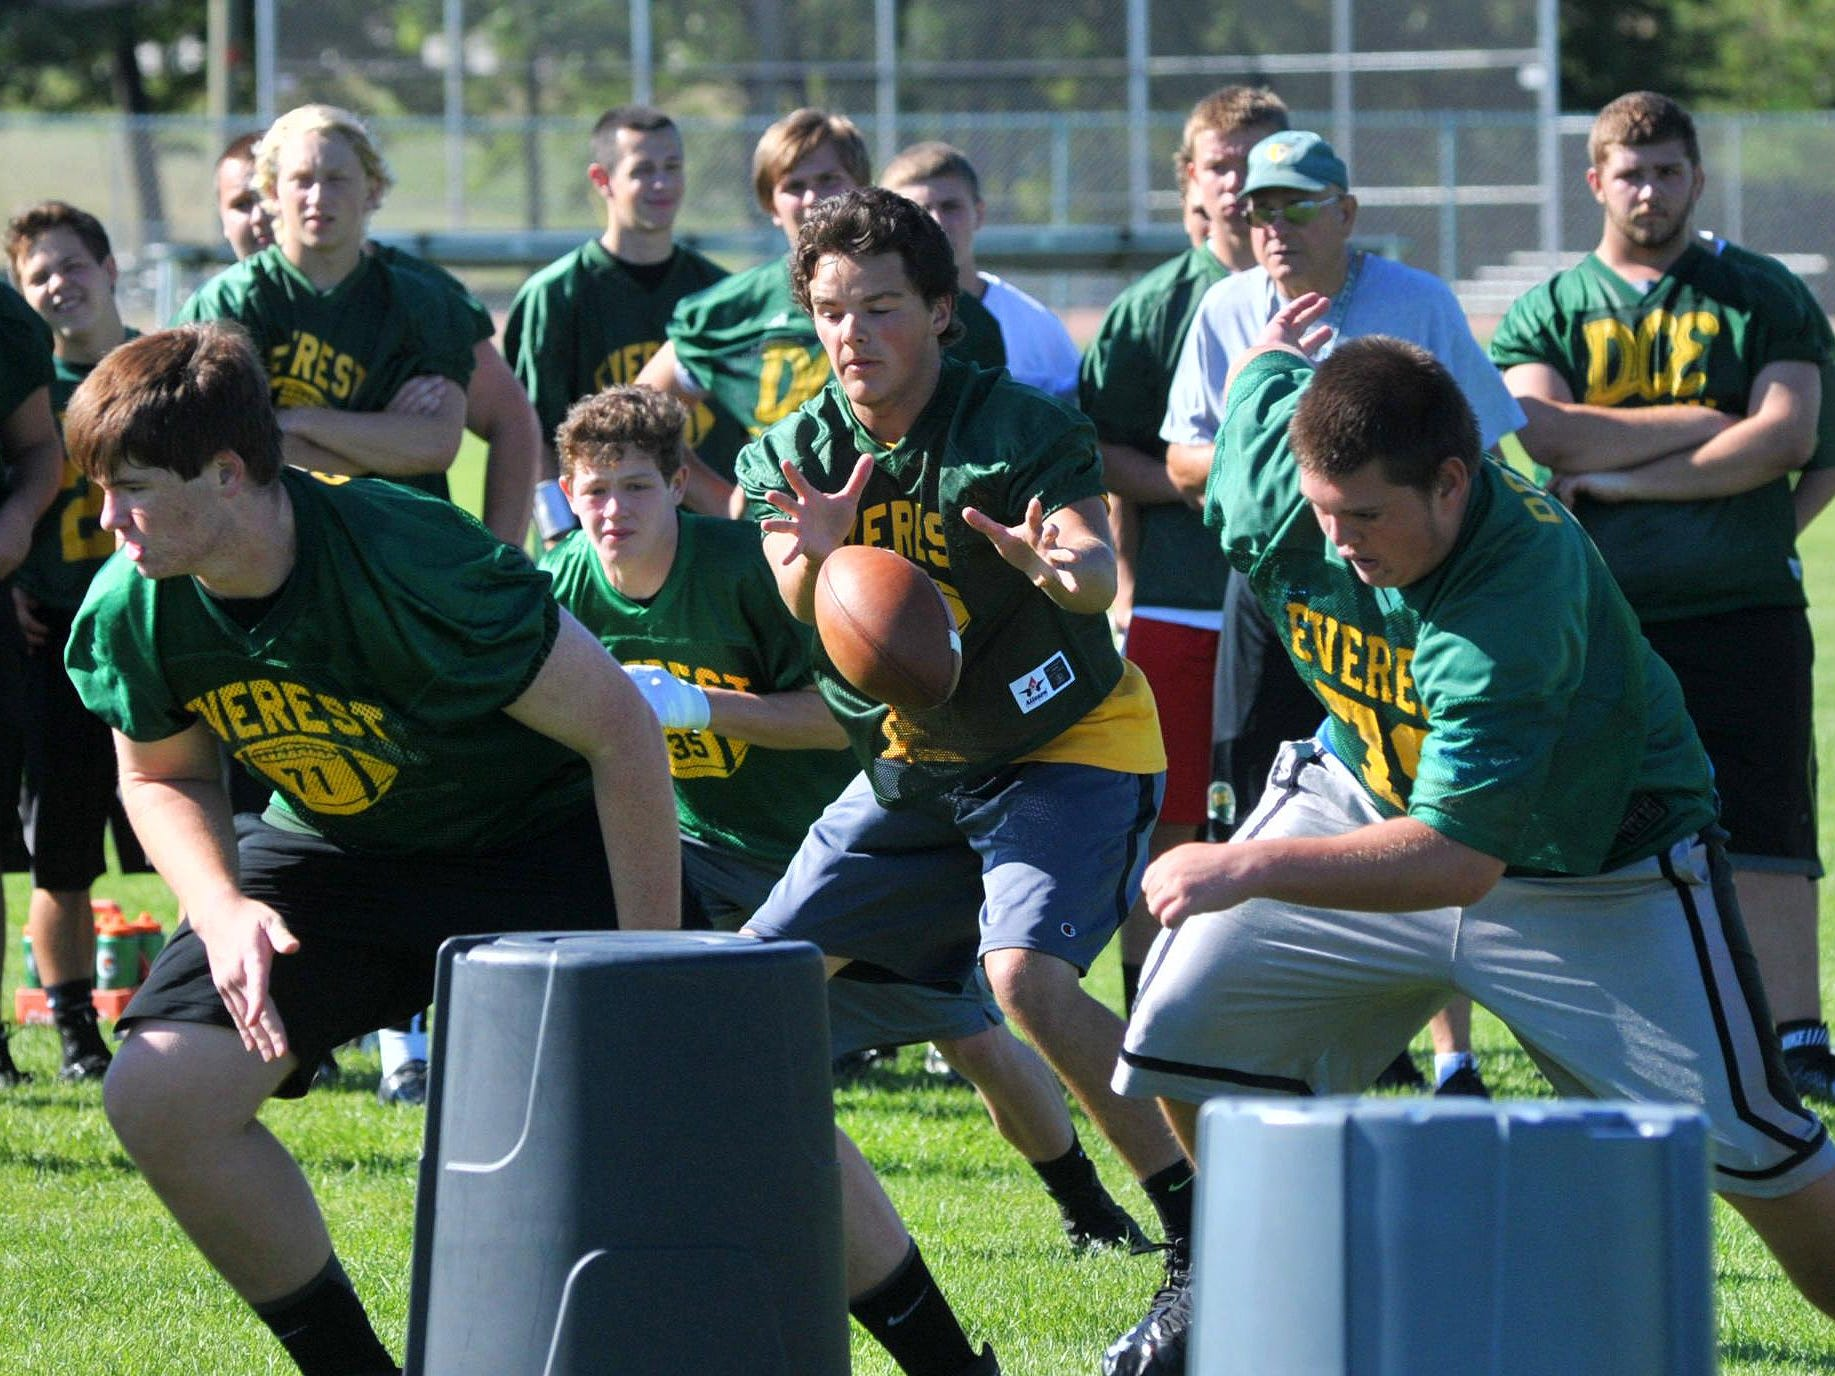 Members of the D.C. Everest football team go through a drill during practice earlier this week. The Evergreens are coming off a 3-6 season.